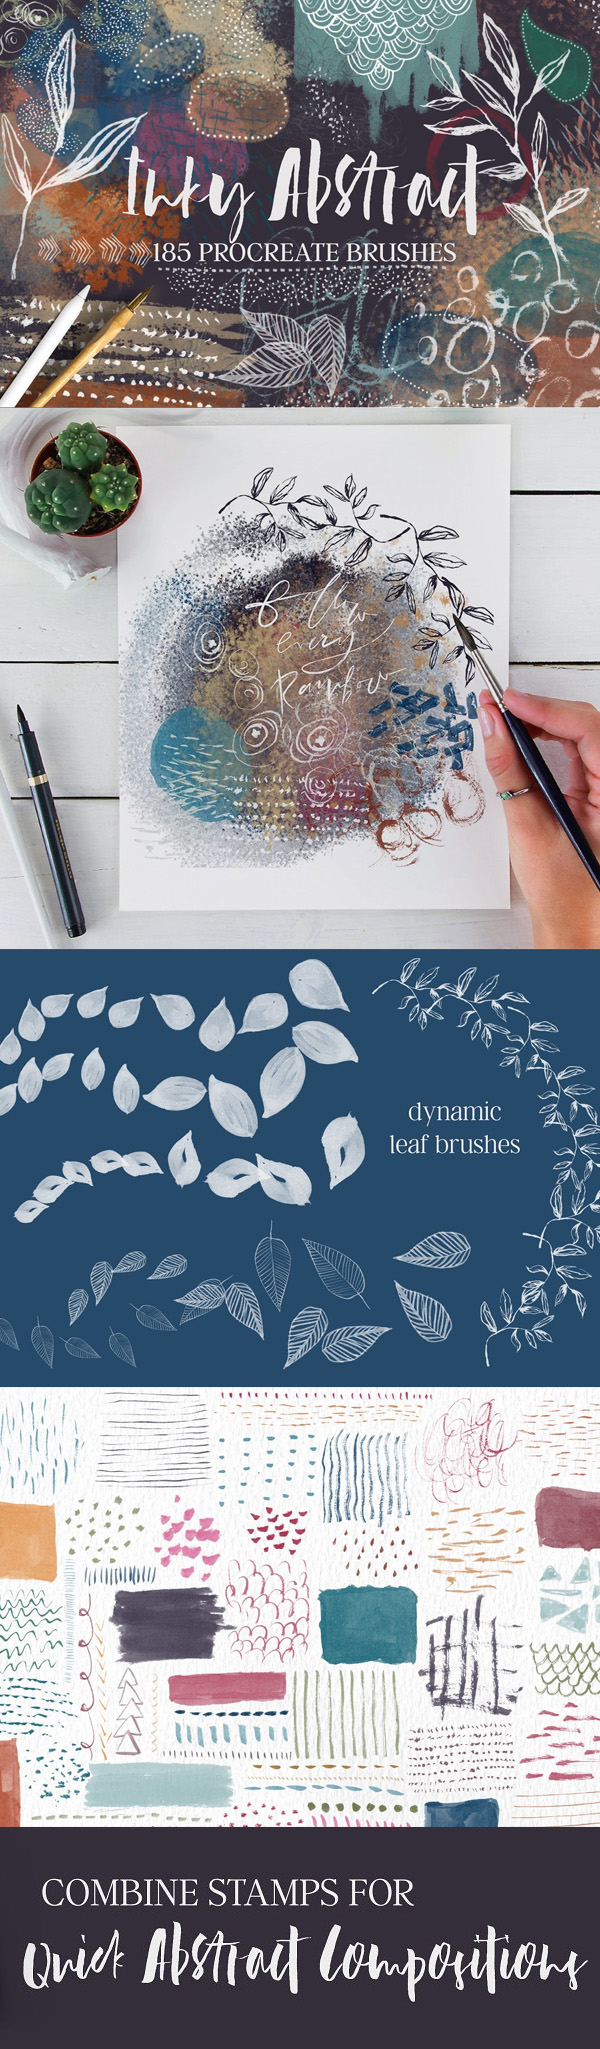 Inky Abstract Procreate Brushes